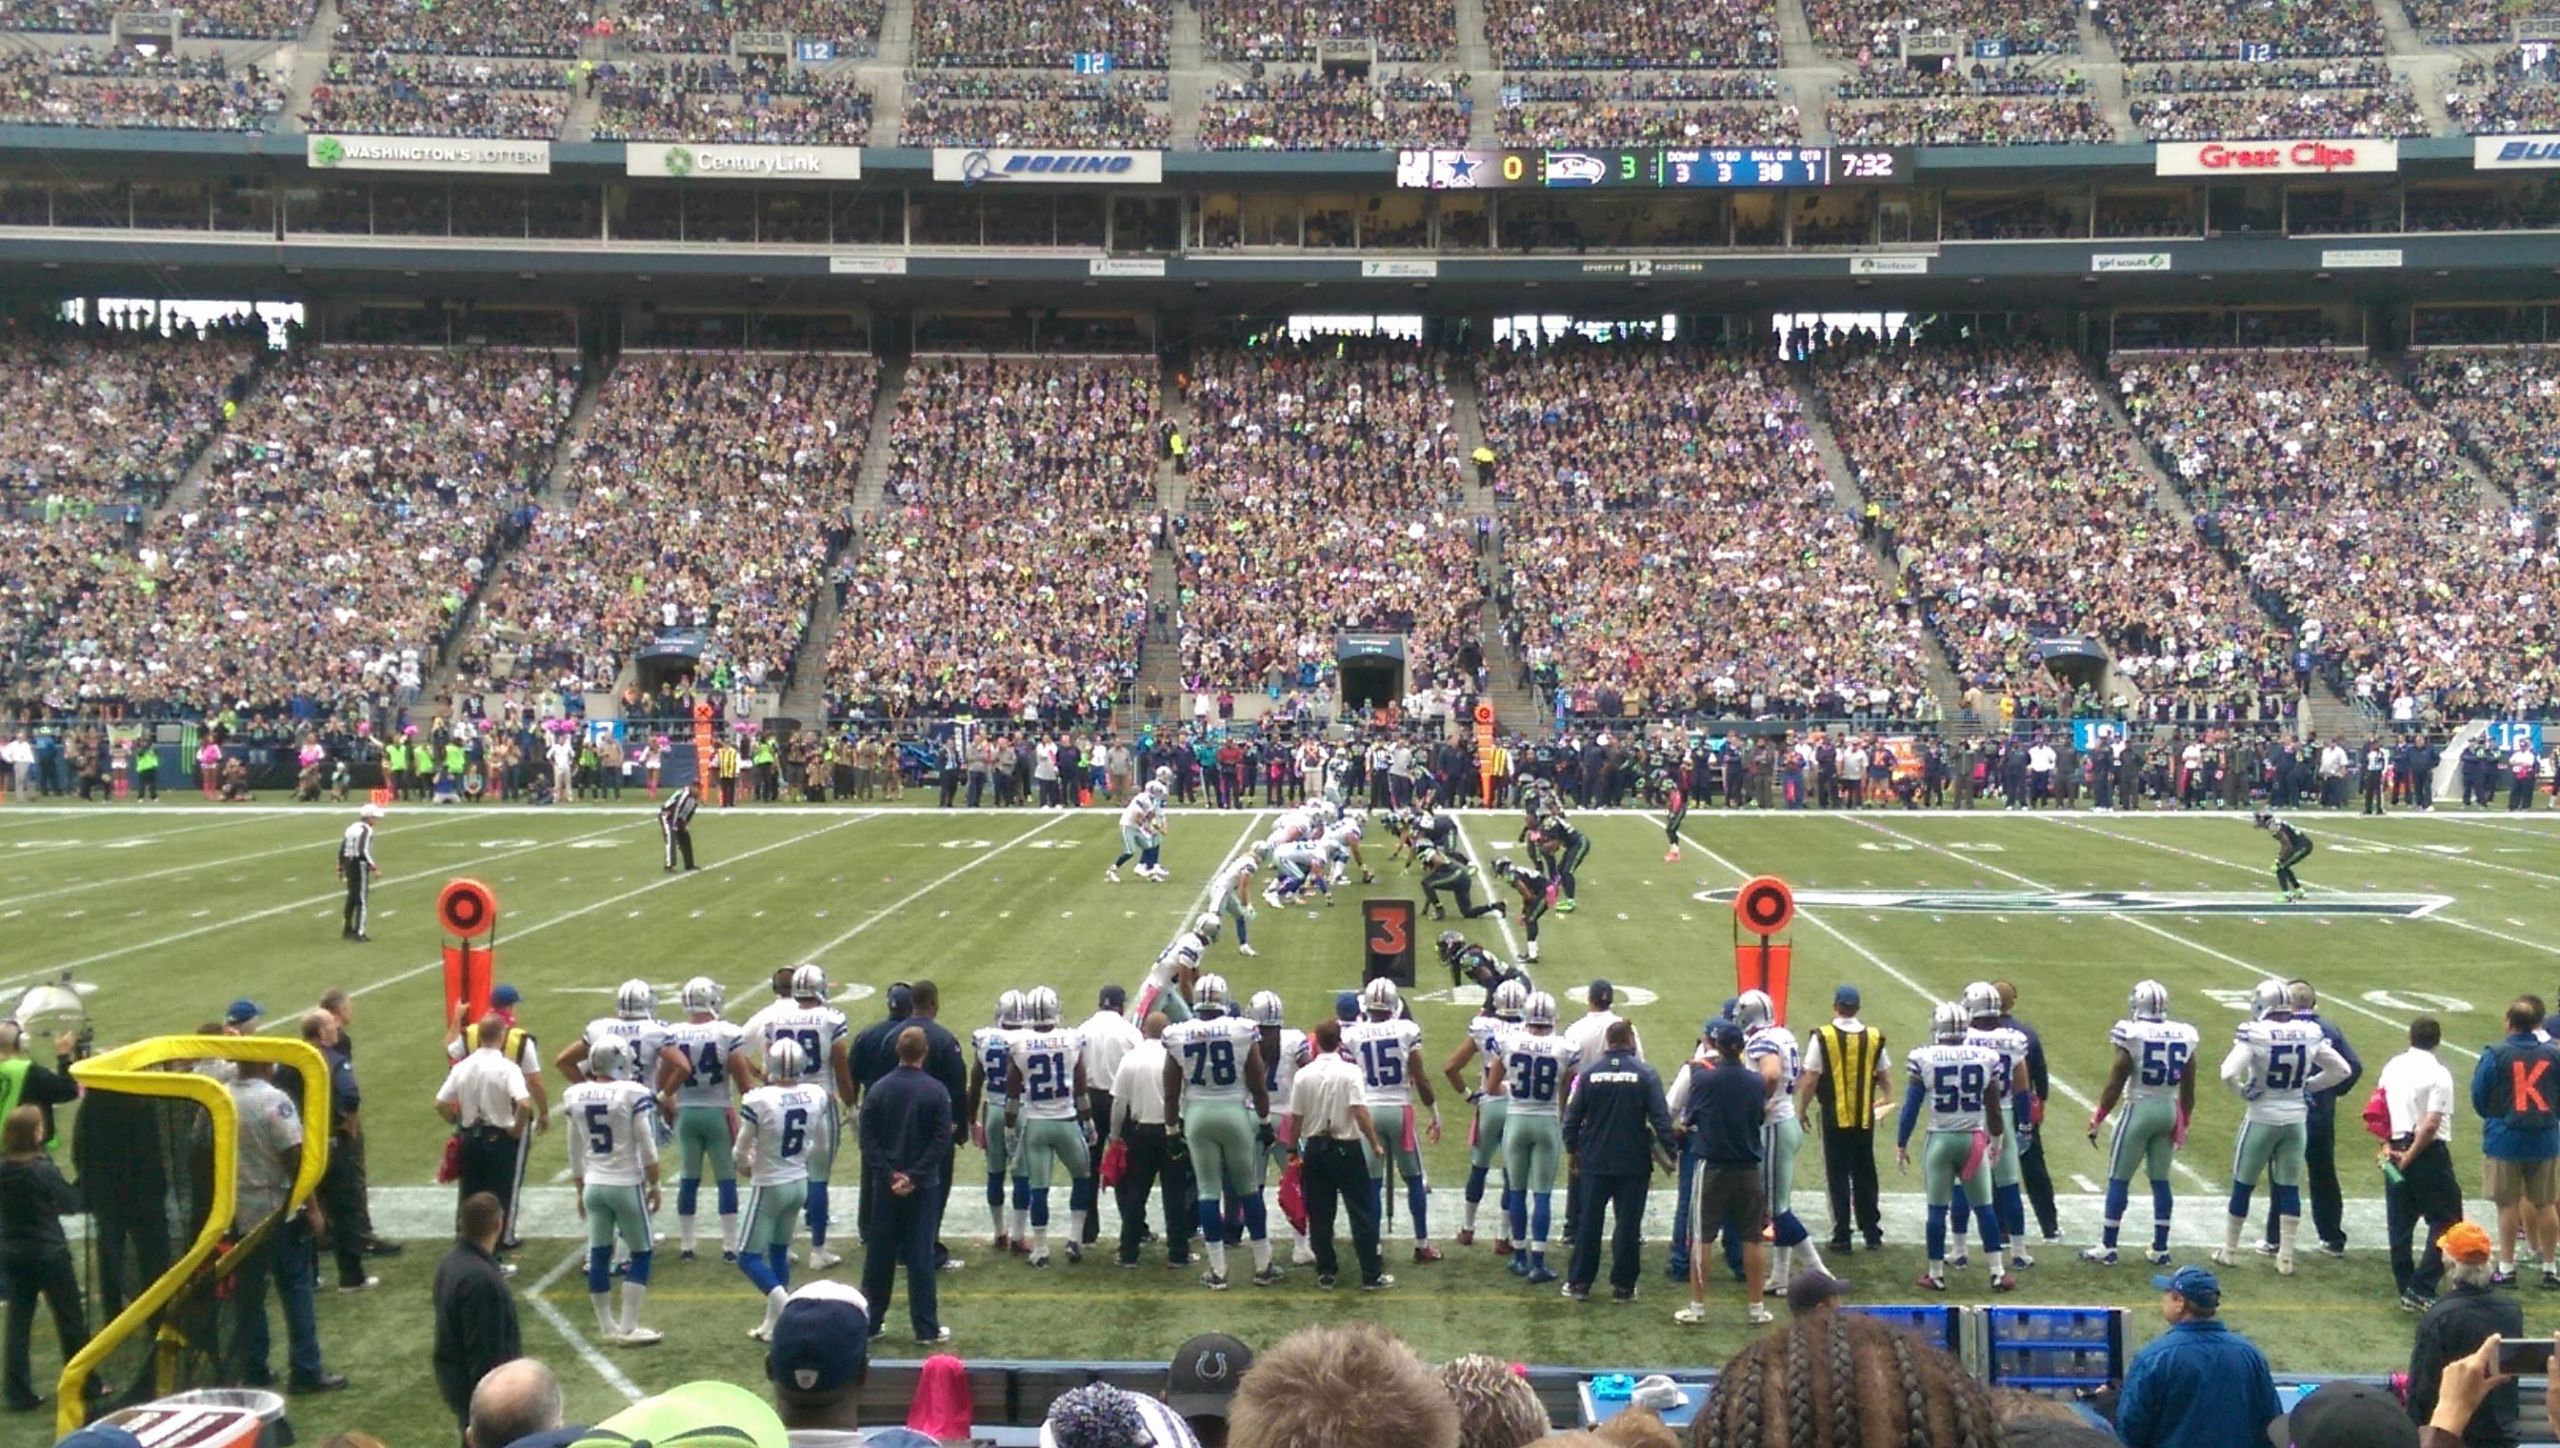 Seahawks Stadium Seat View Elegant Centurylink Field Section 110 Seattle Seahawks